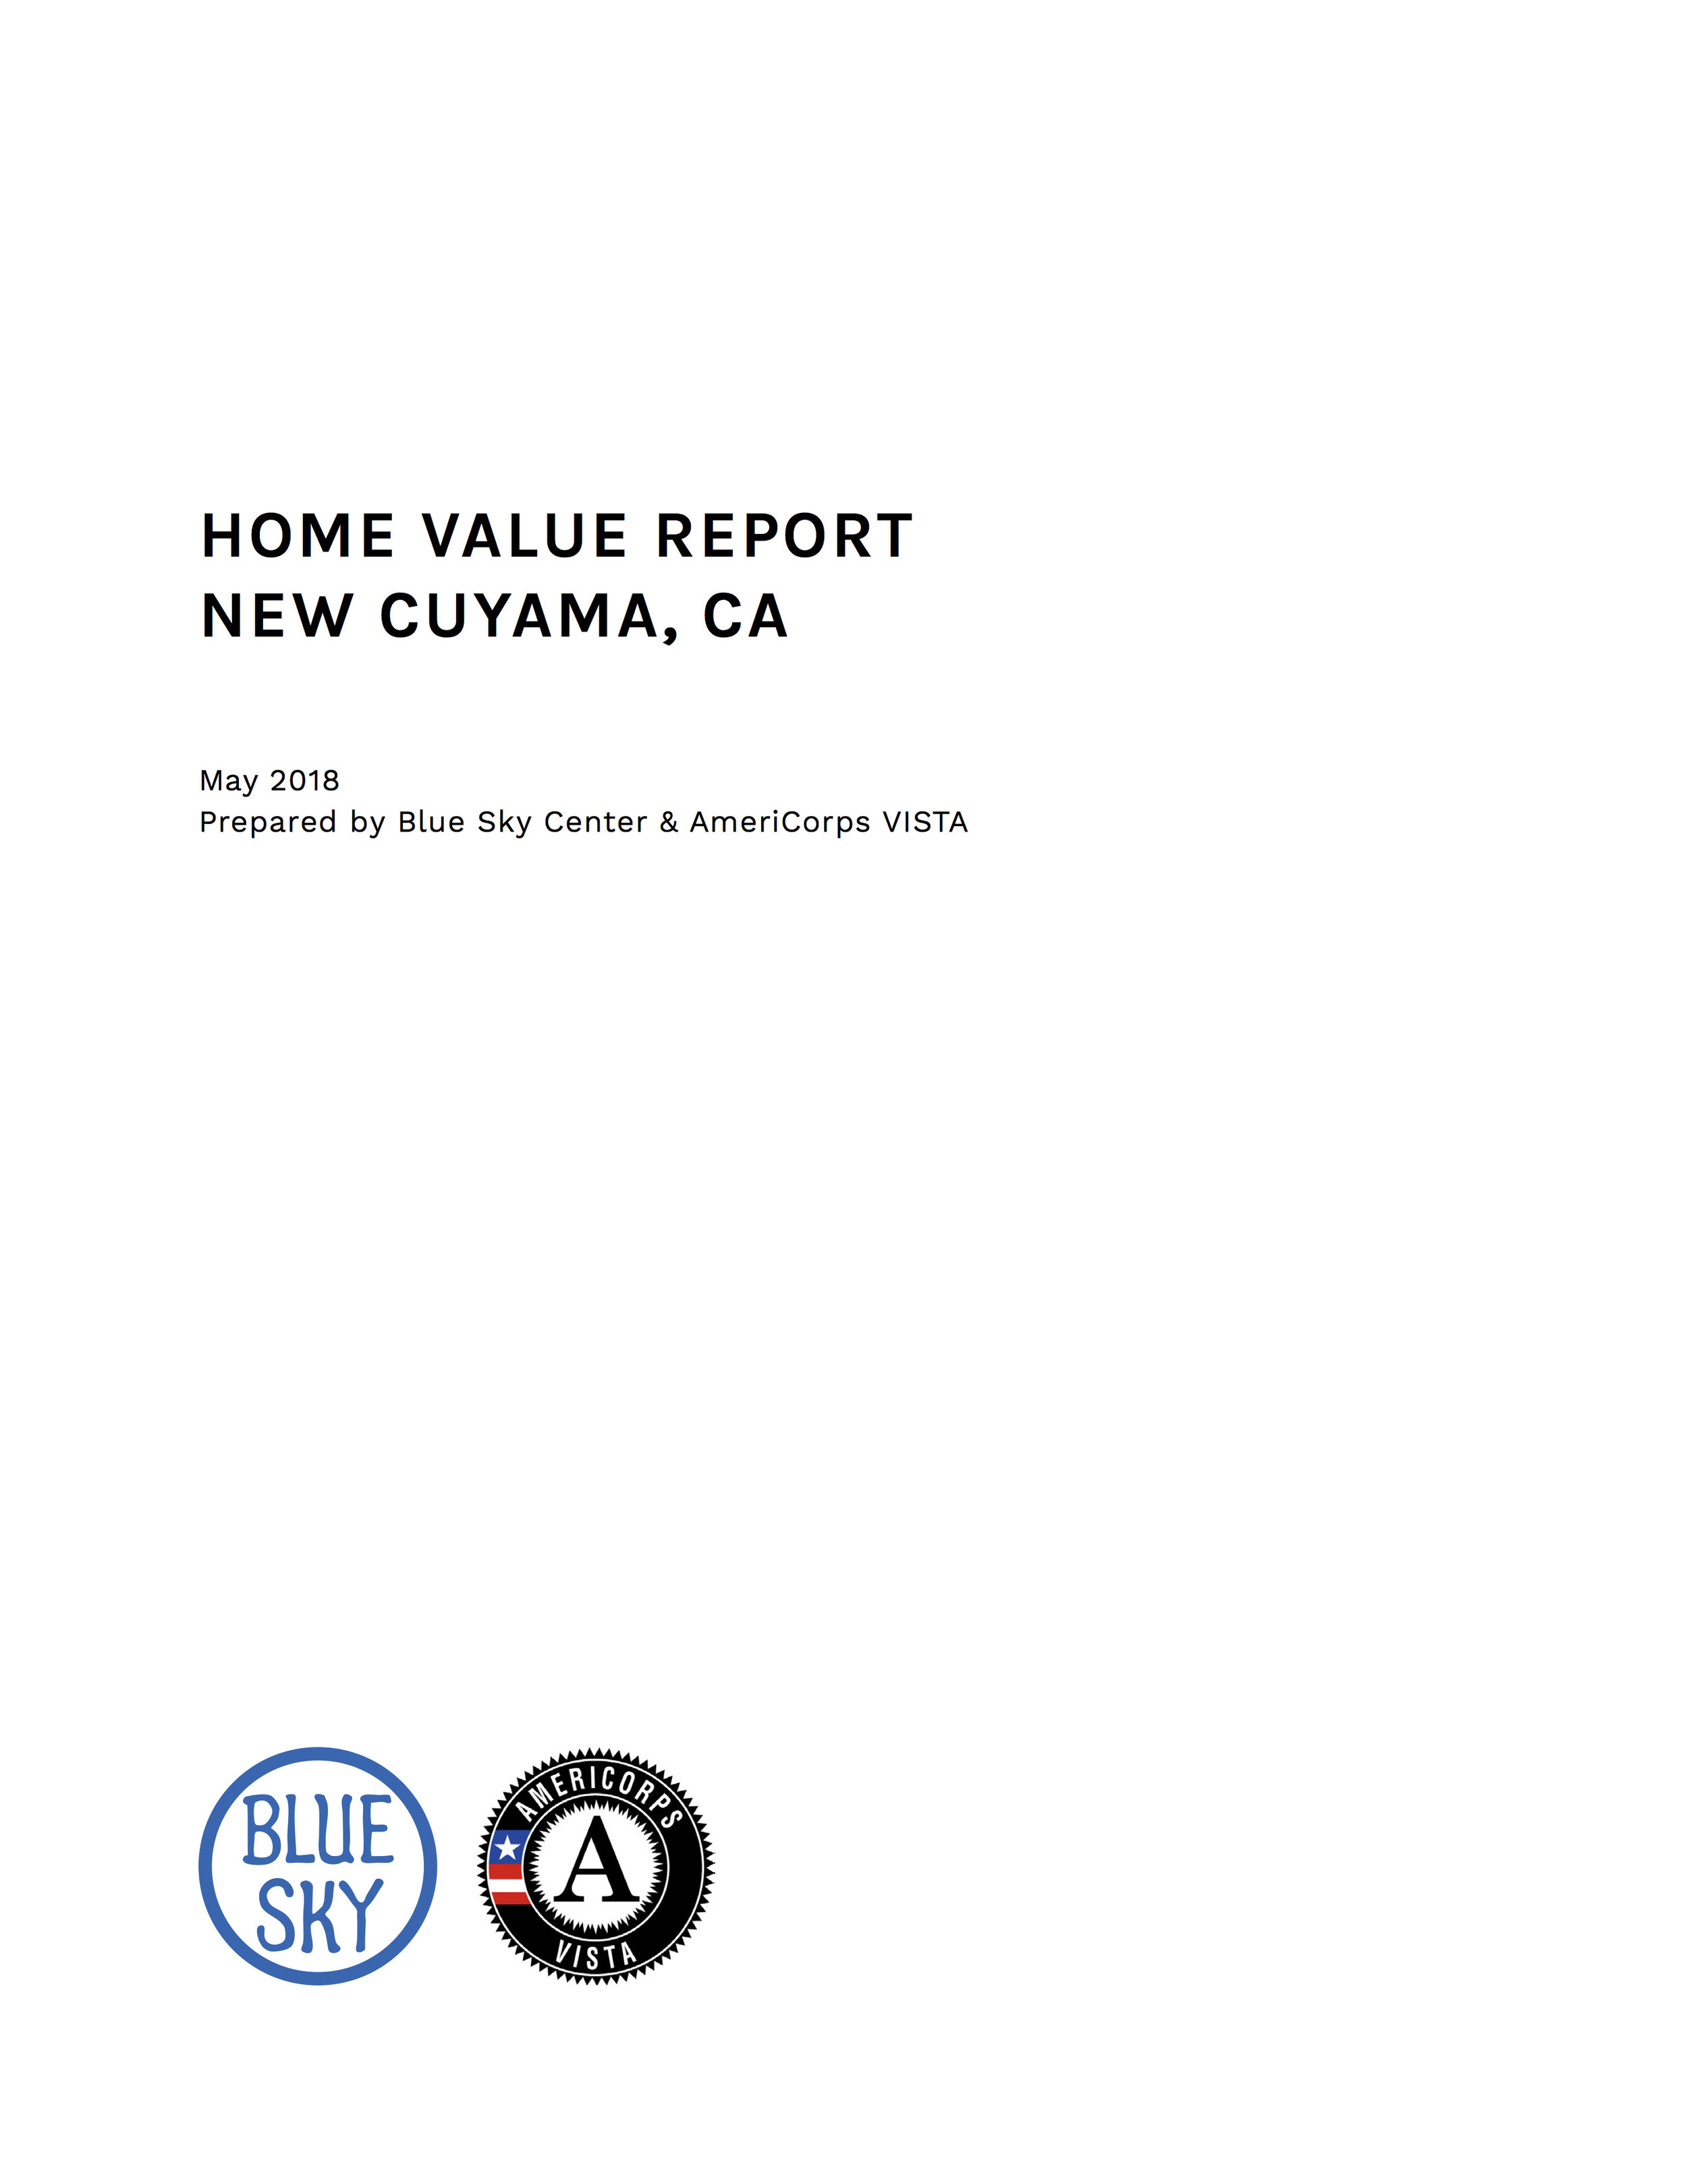 New Cuyama Home Value Report